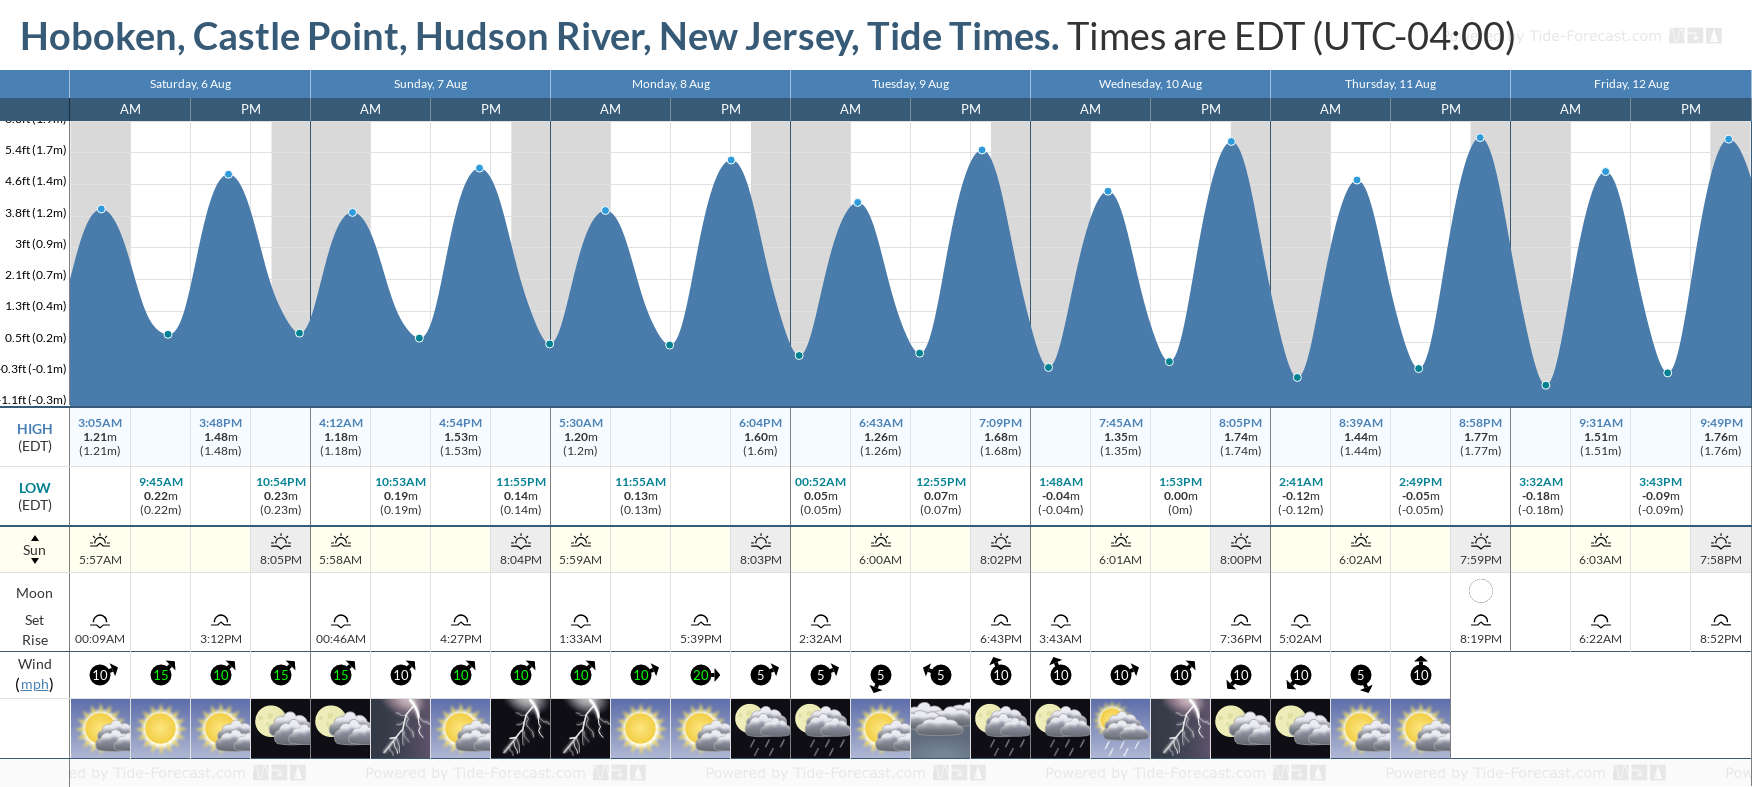 Hoboken, Castle Point, Hudson River, New Jersey Tide Chart including high and low tide tide times for the next 7 days